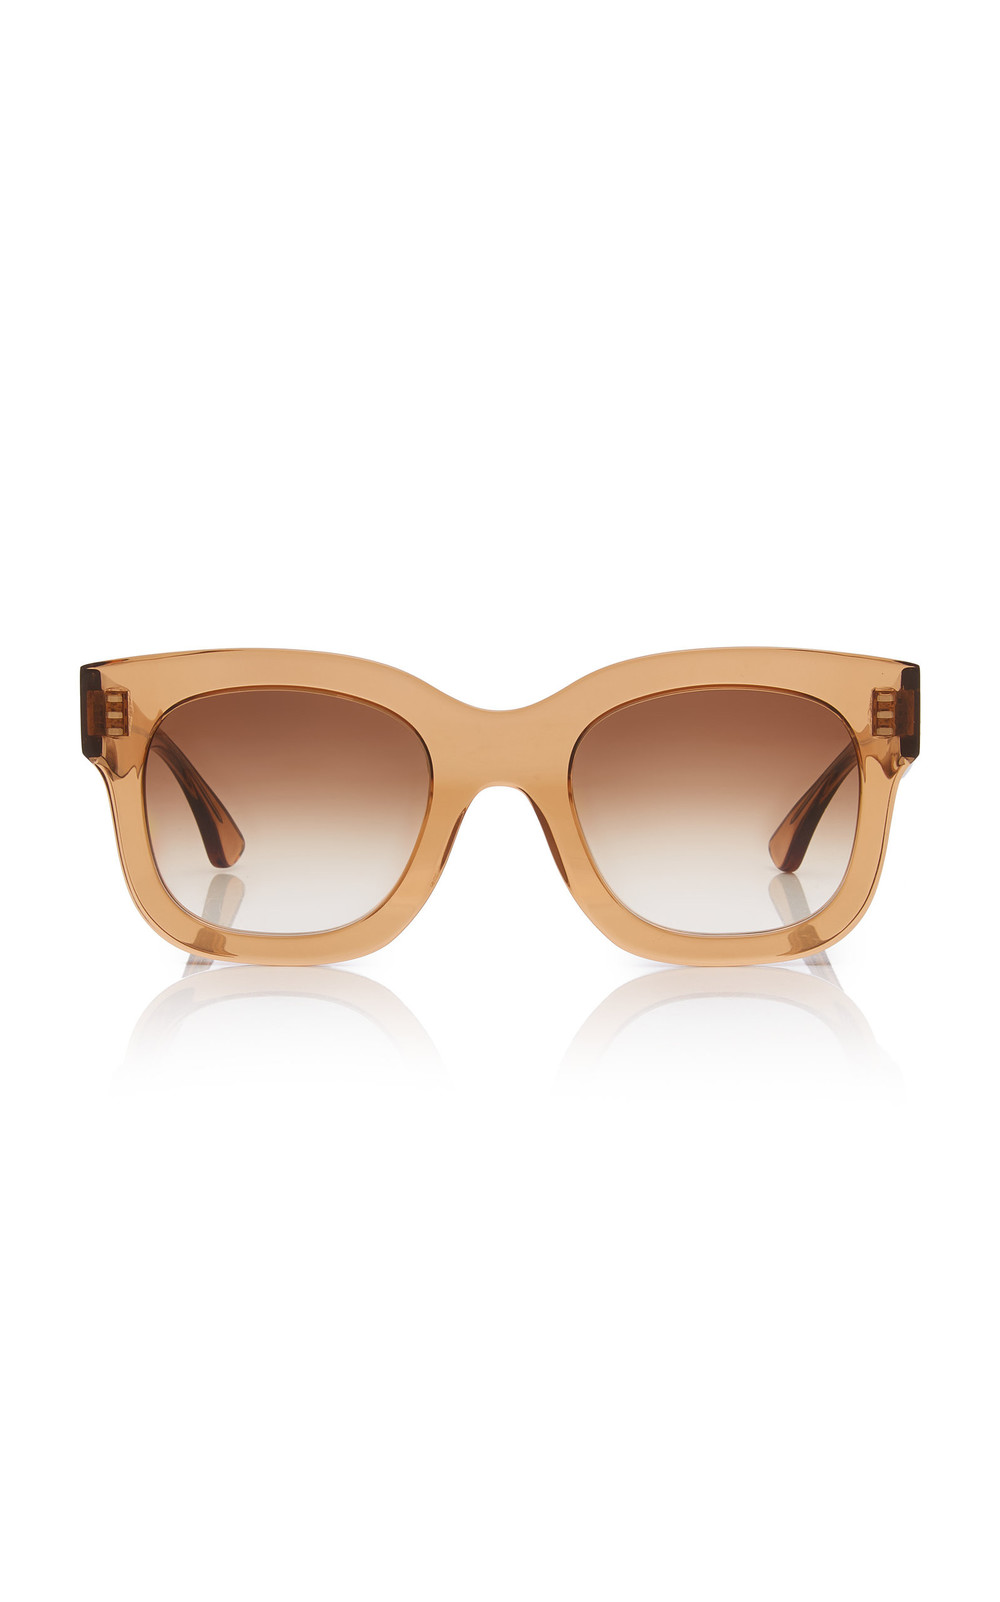 Thierry Lasry Unicorny 864 Cat-Eye Acetate Sunglasses in neutral